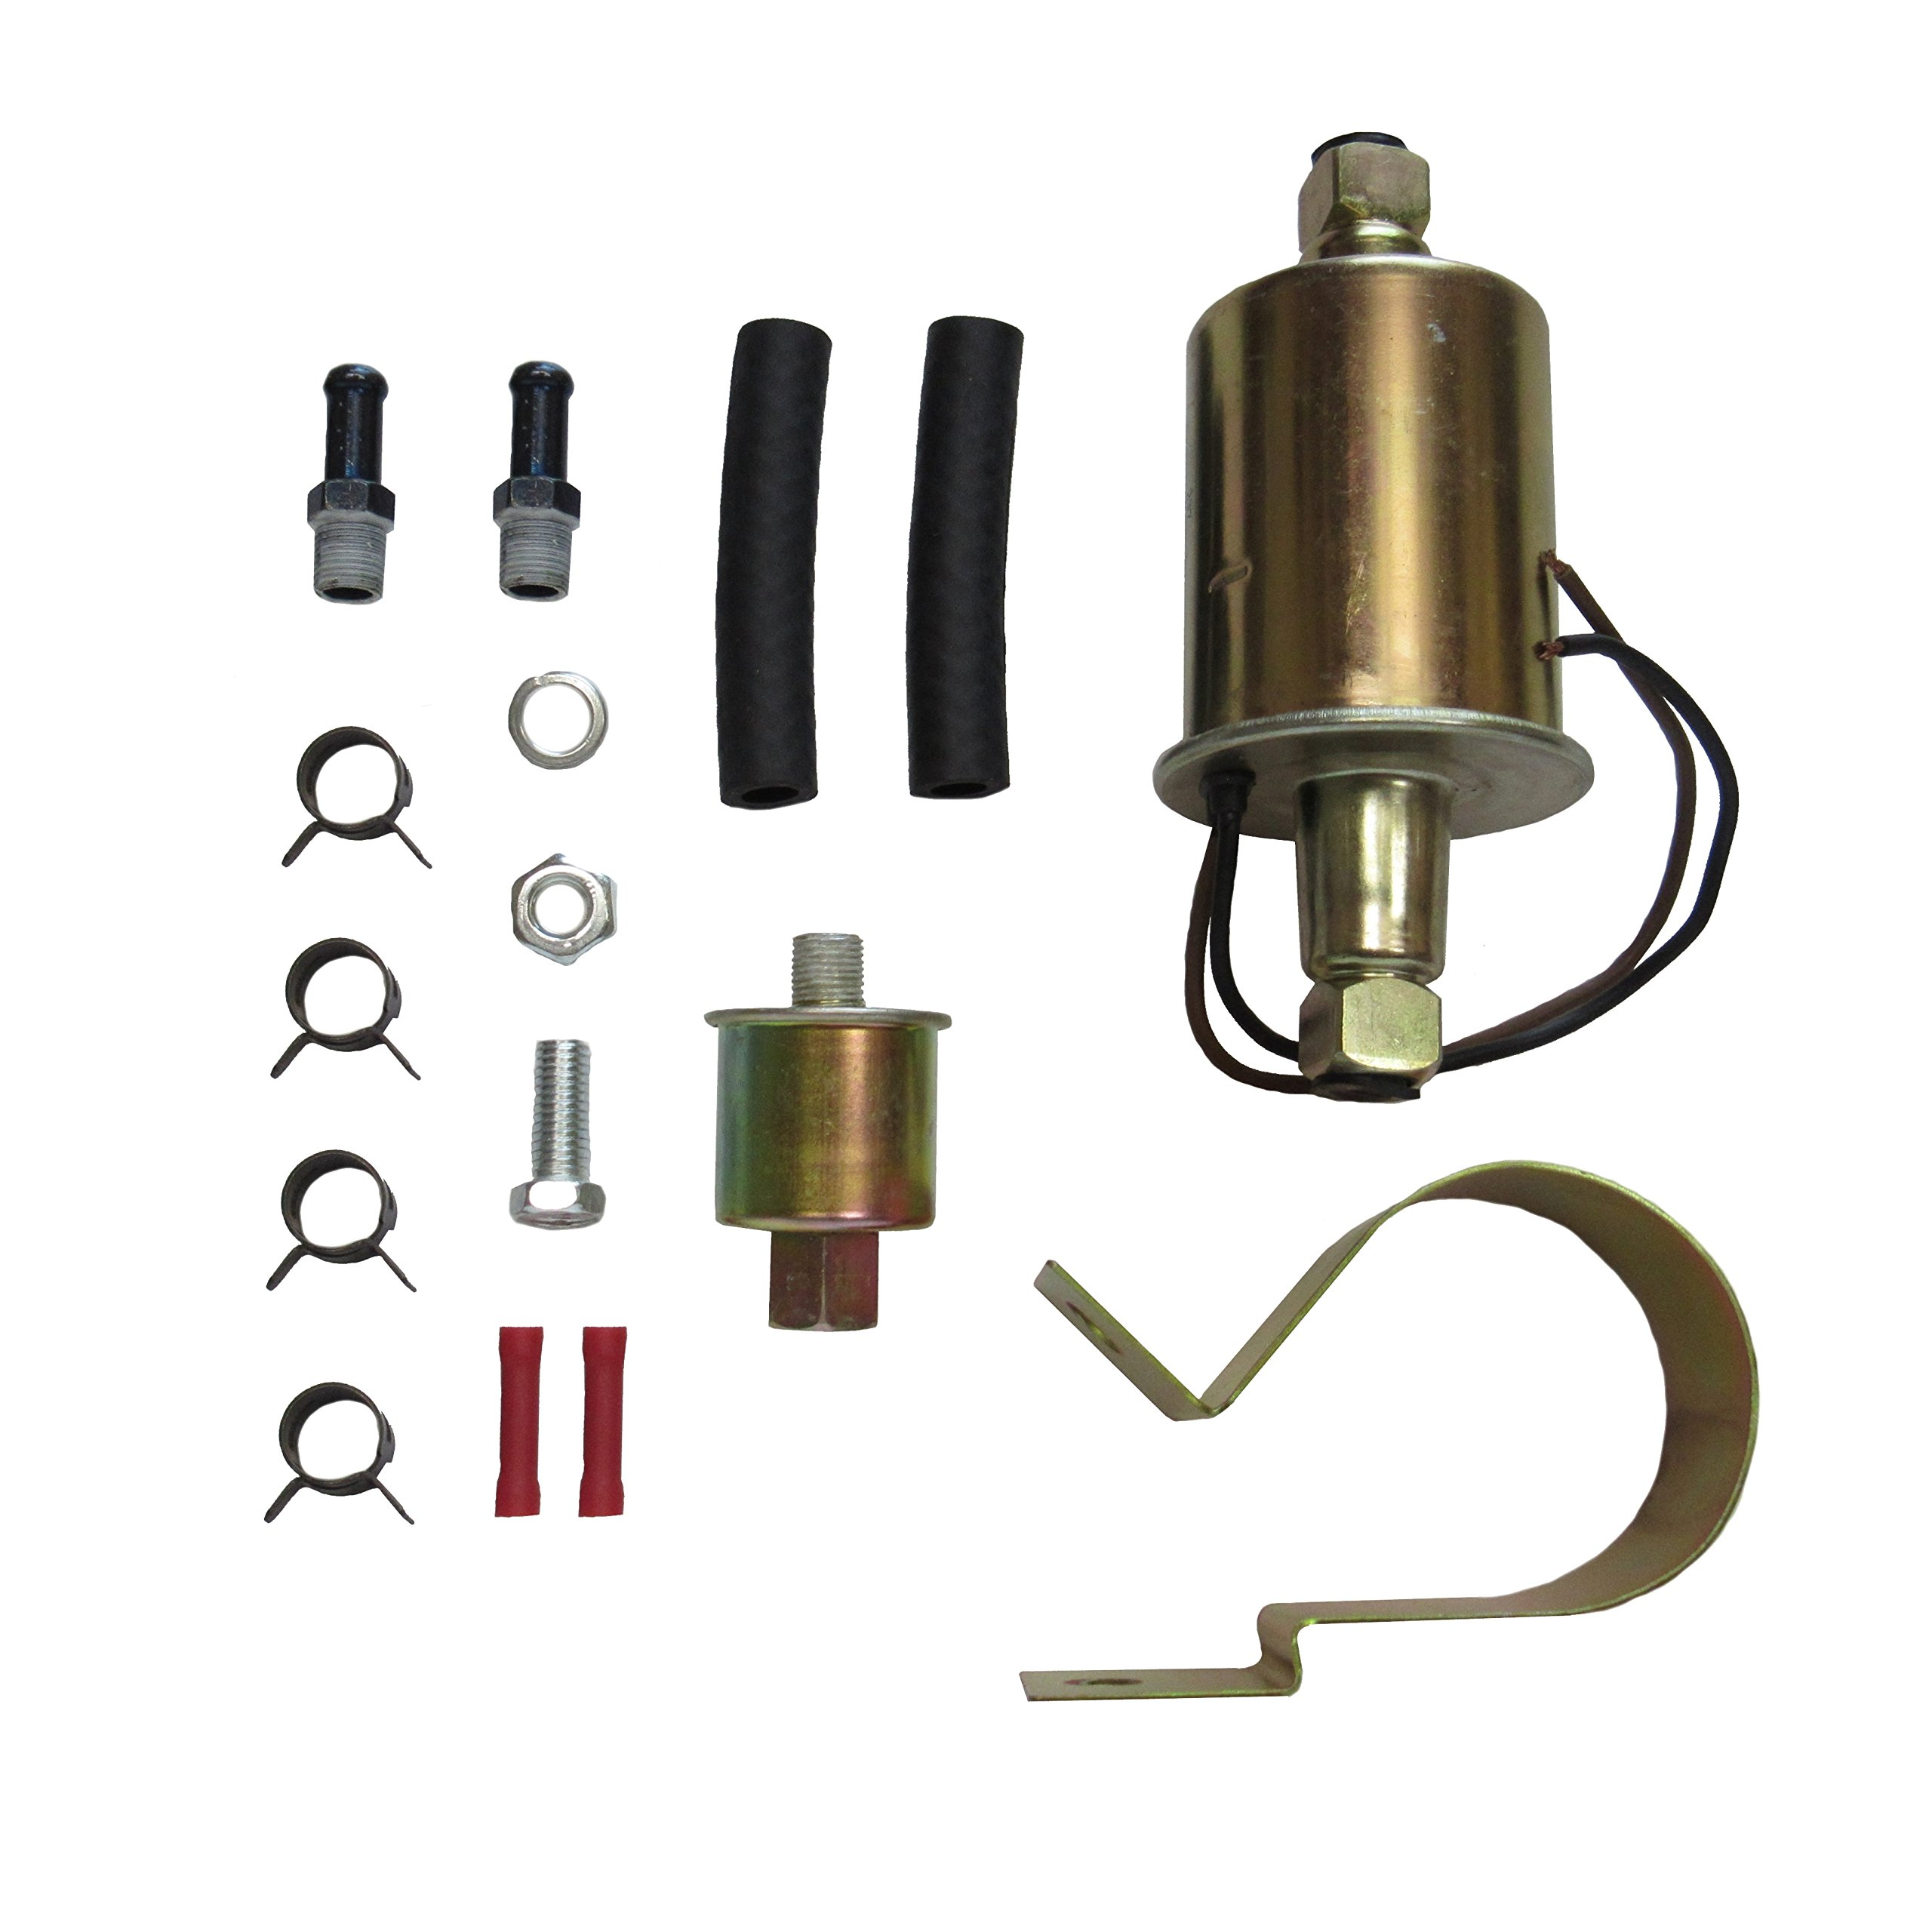 Autobest F4027 Externally Mounted Universal Electric Fuel Pump by Autobest